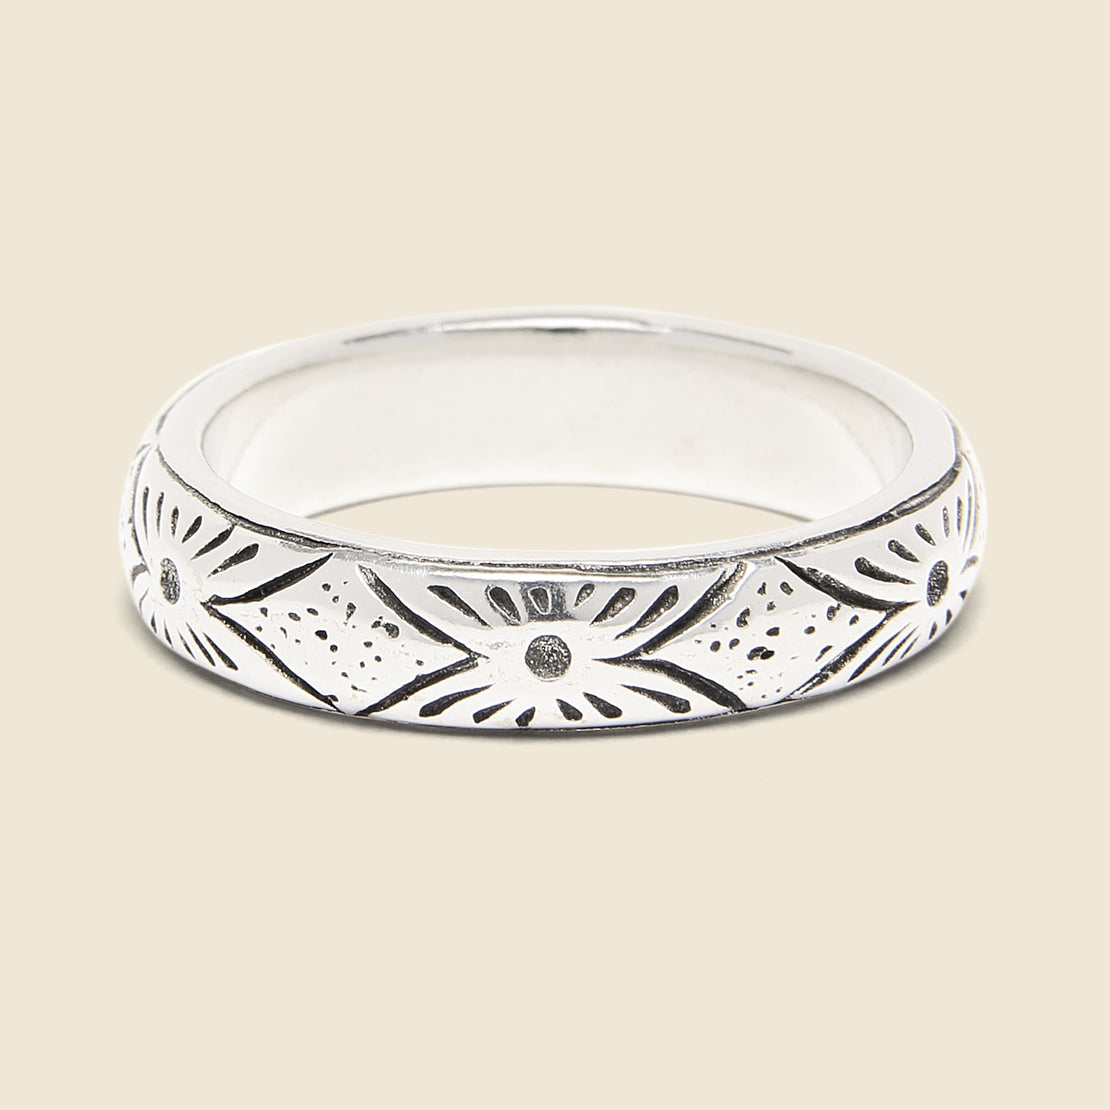 LHN Jewelry Yates Ring - Sterling Silver